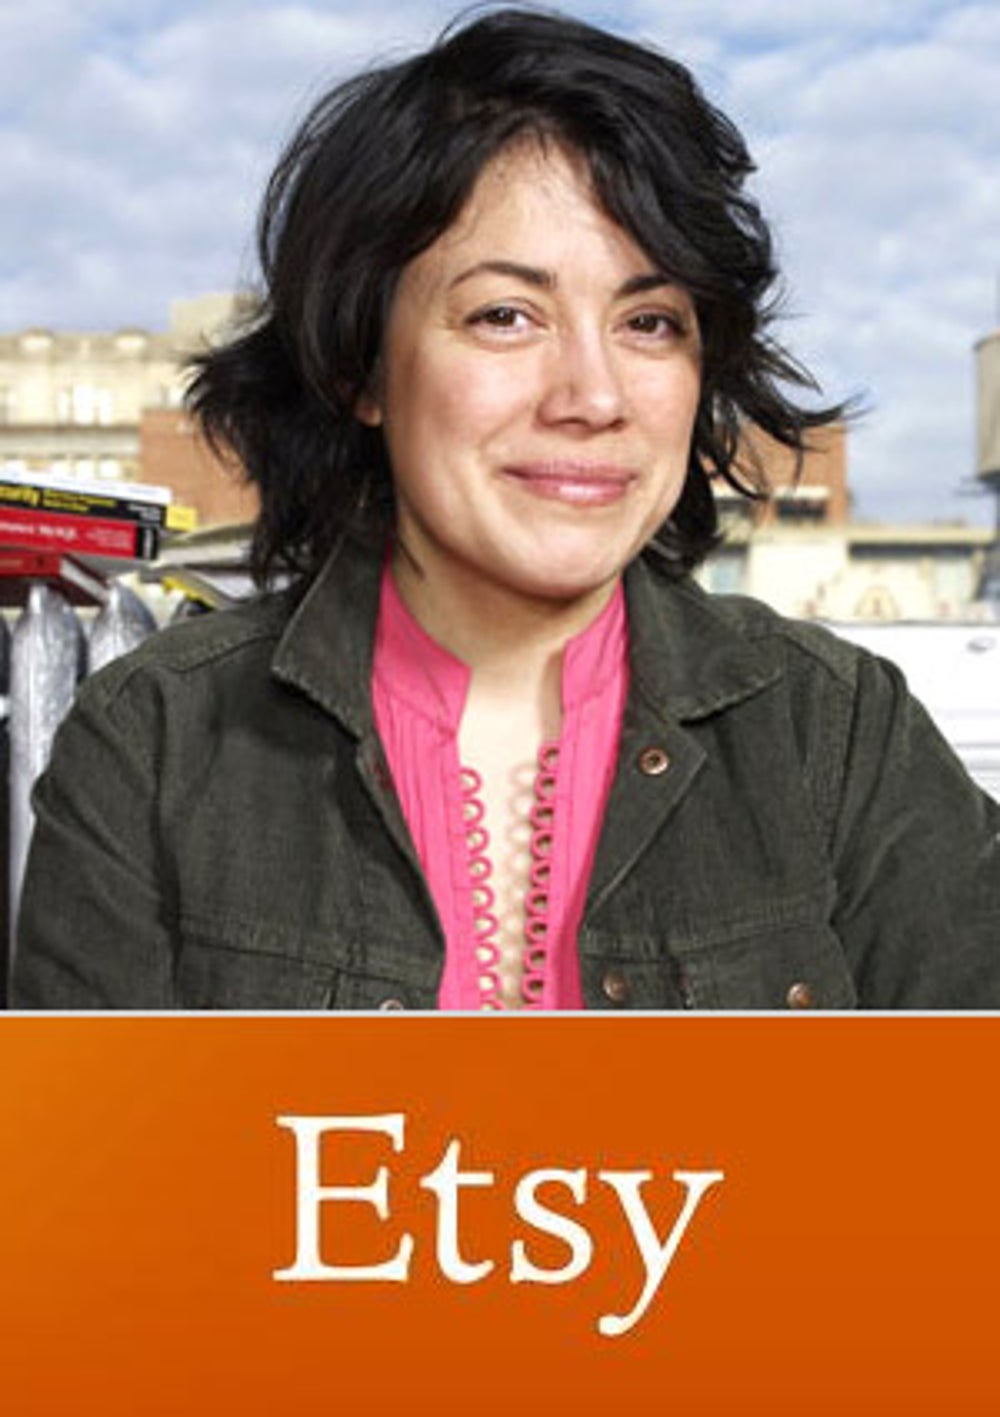 Caterina Fake, investment: Esty